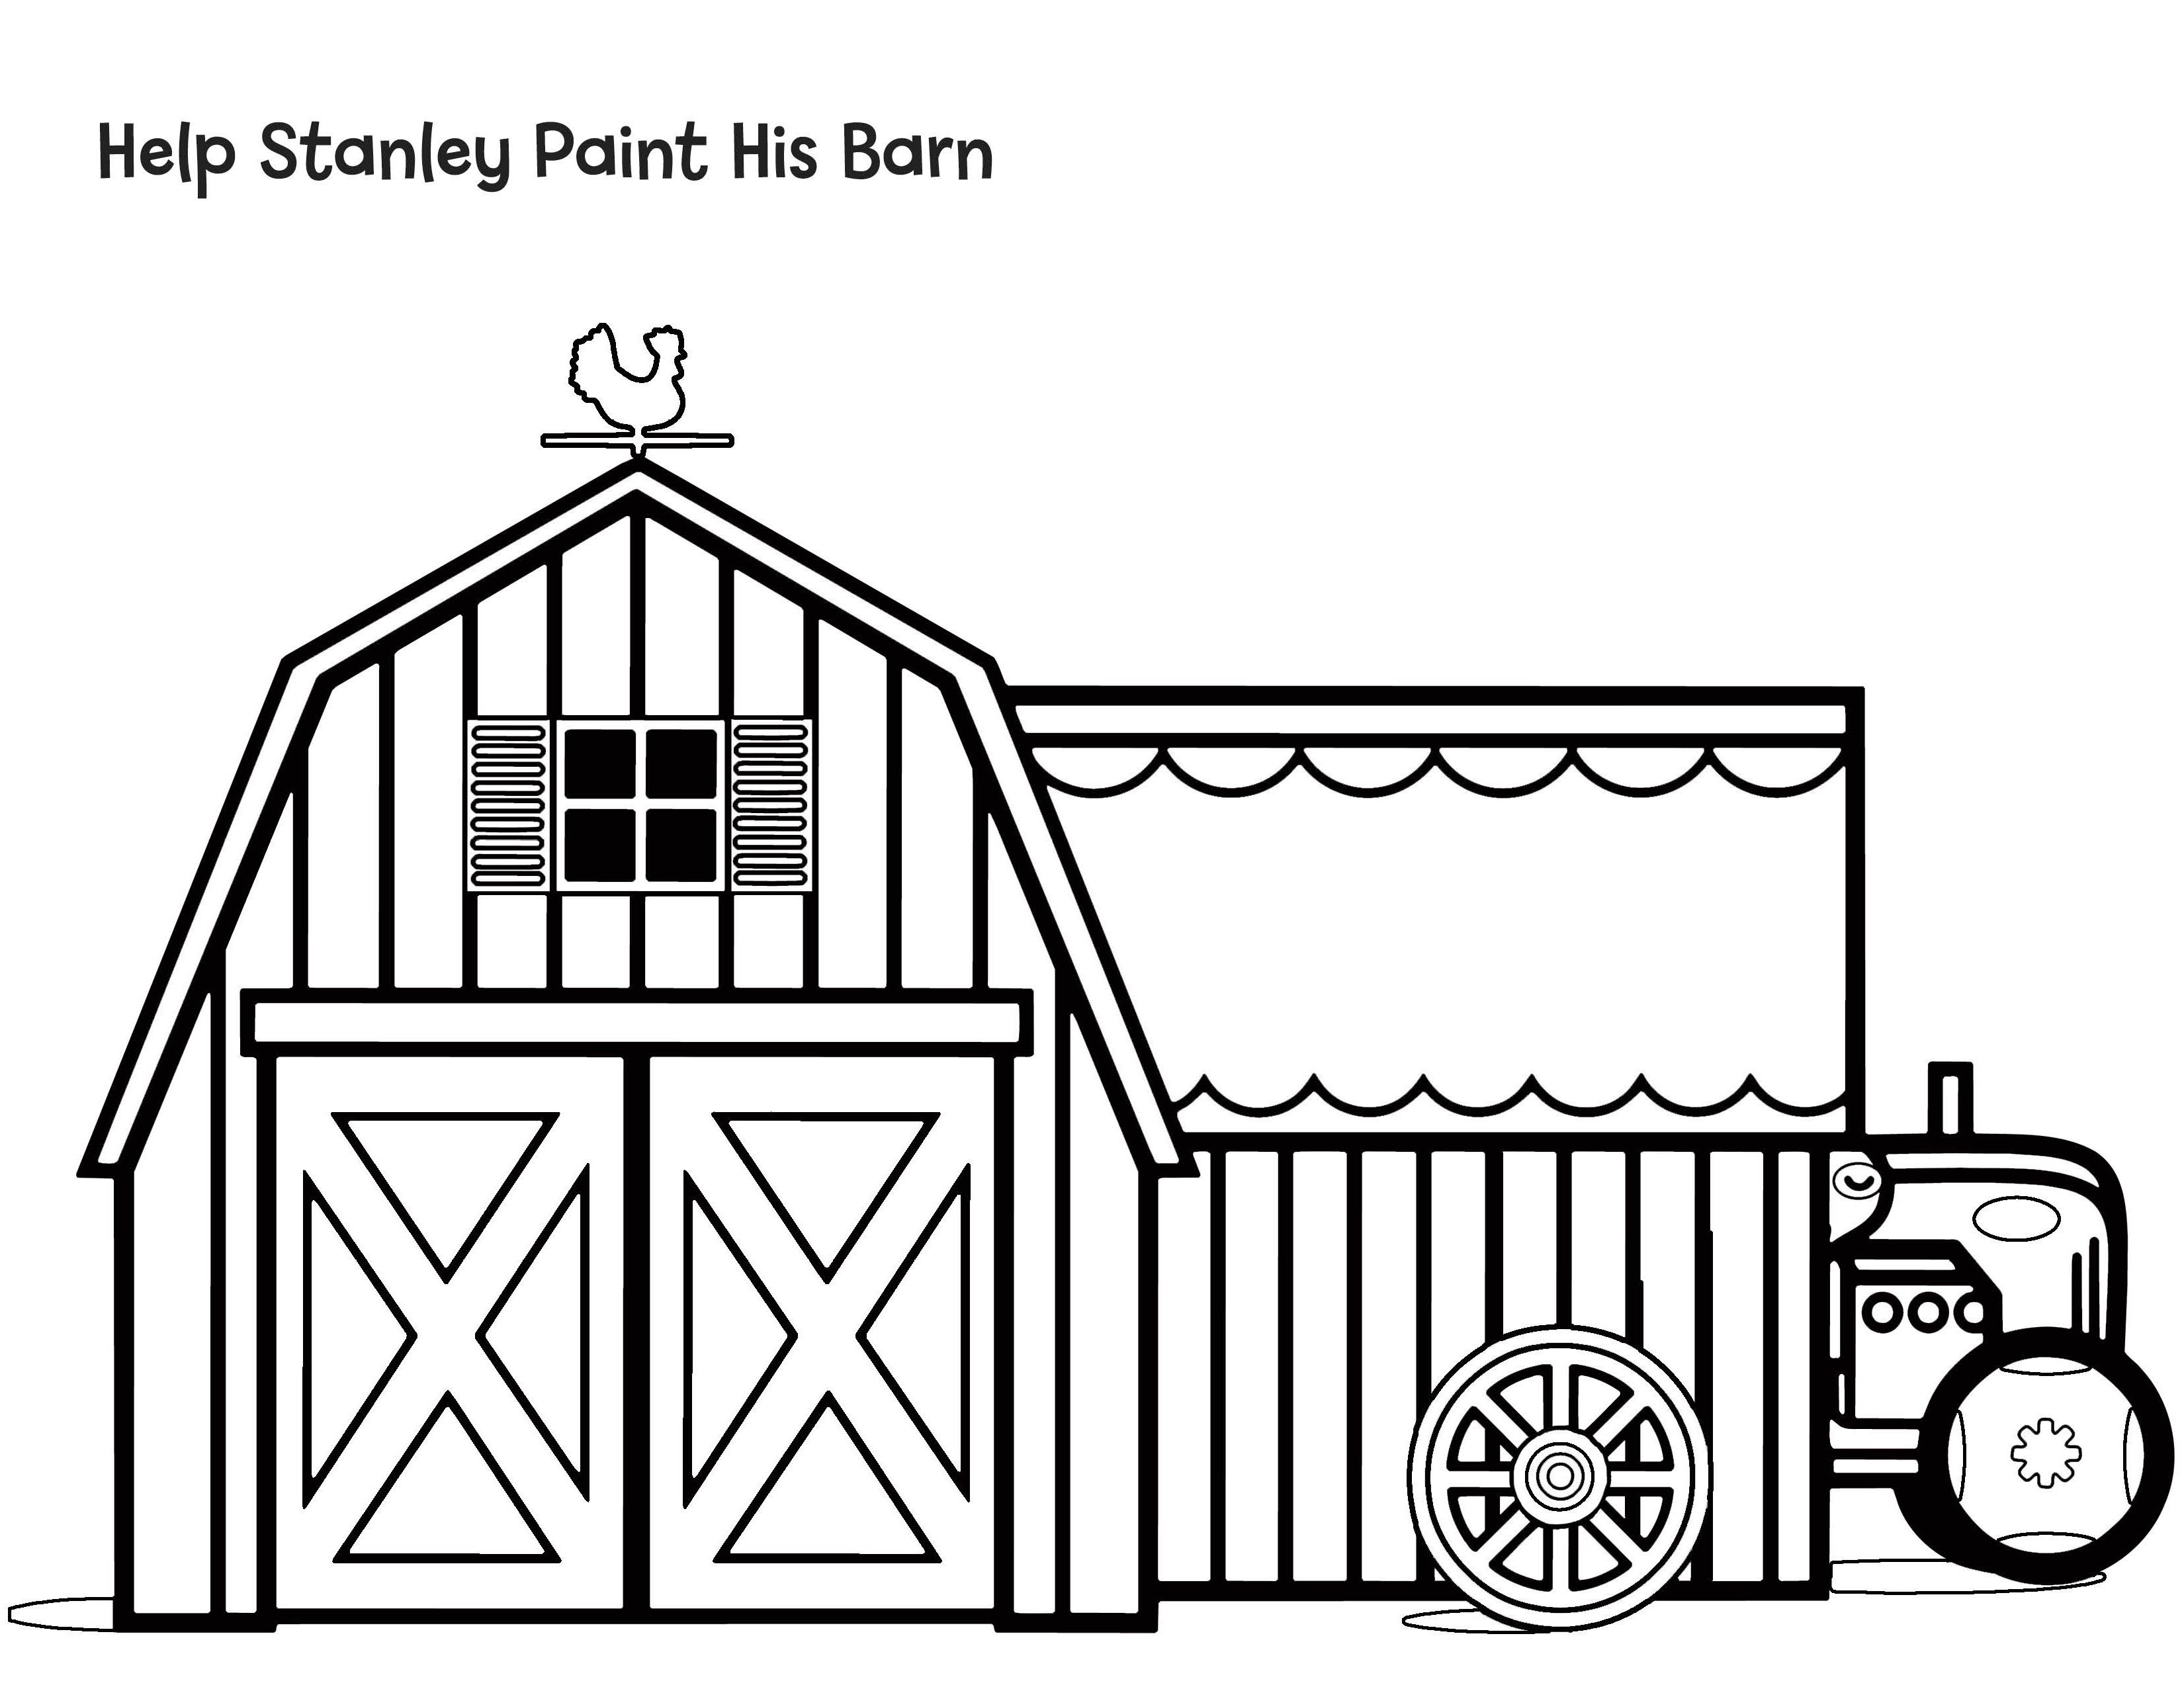 Help Stanley Paint His Barn A Coloring Sheet To Go With Stanley The Farmer Download The Free Activity Kit Here Http Coloring Sheets Painting Activity Kits